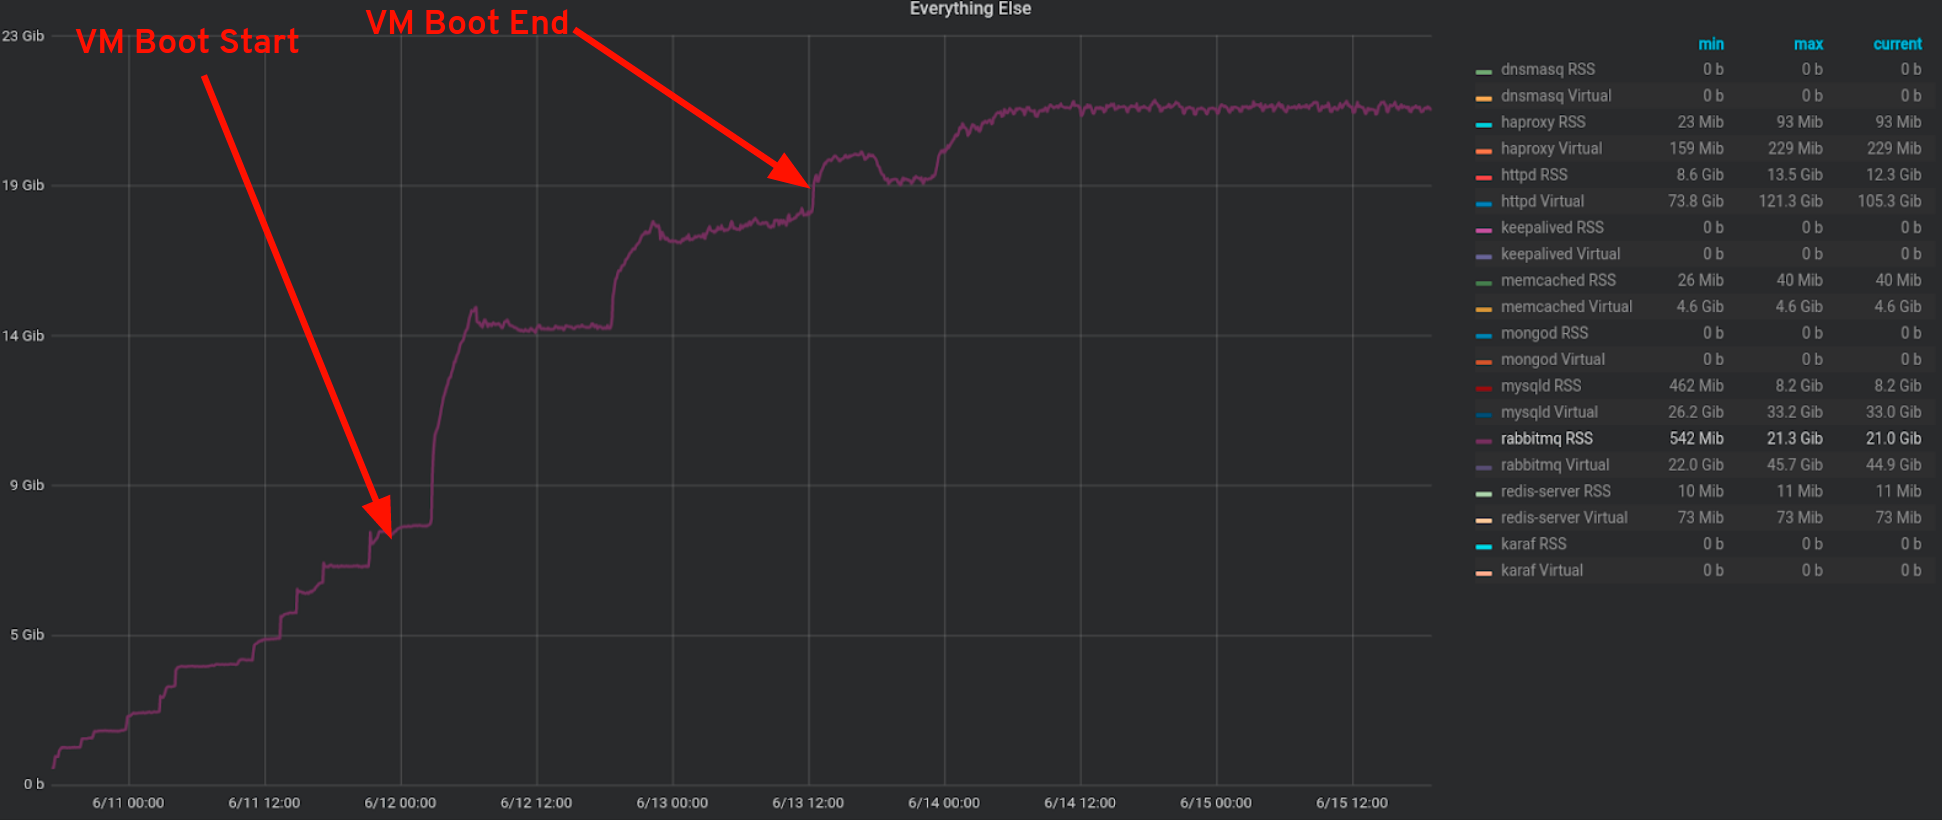 RabbitMQ RSS Memory usage